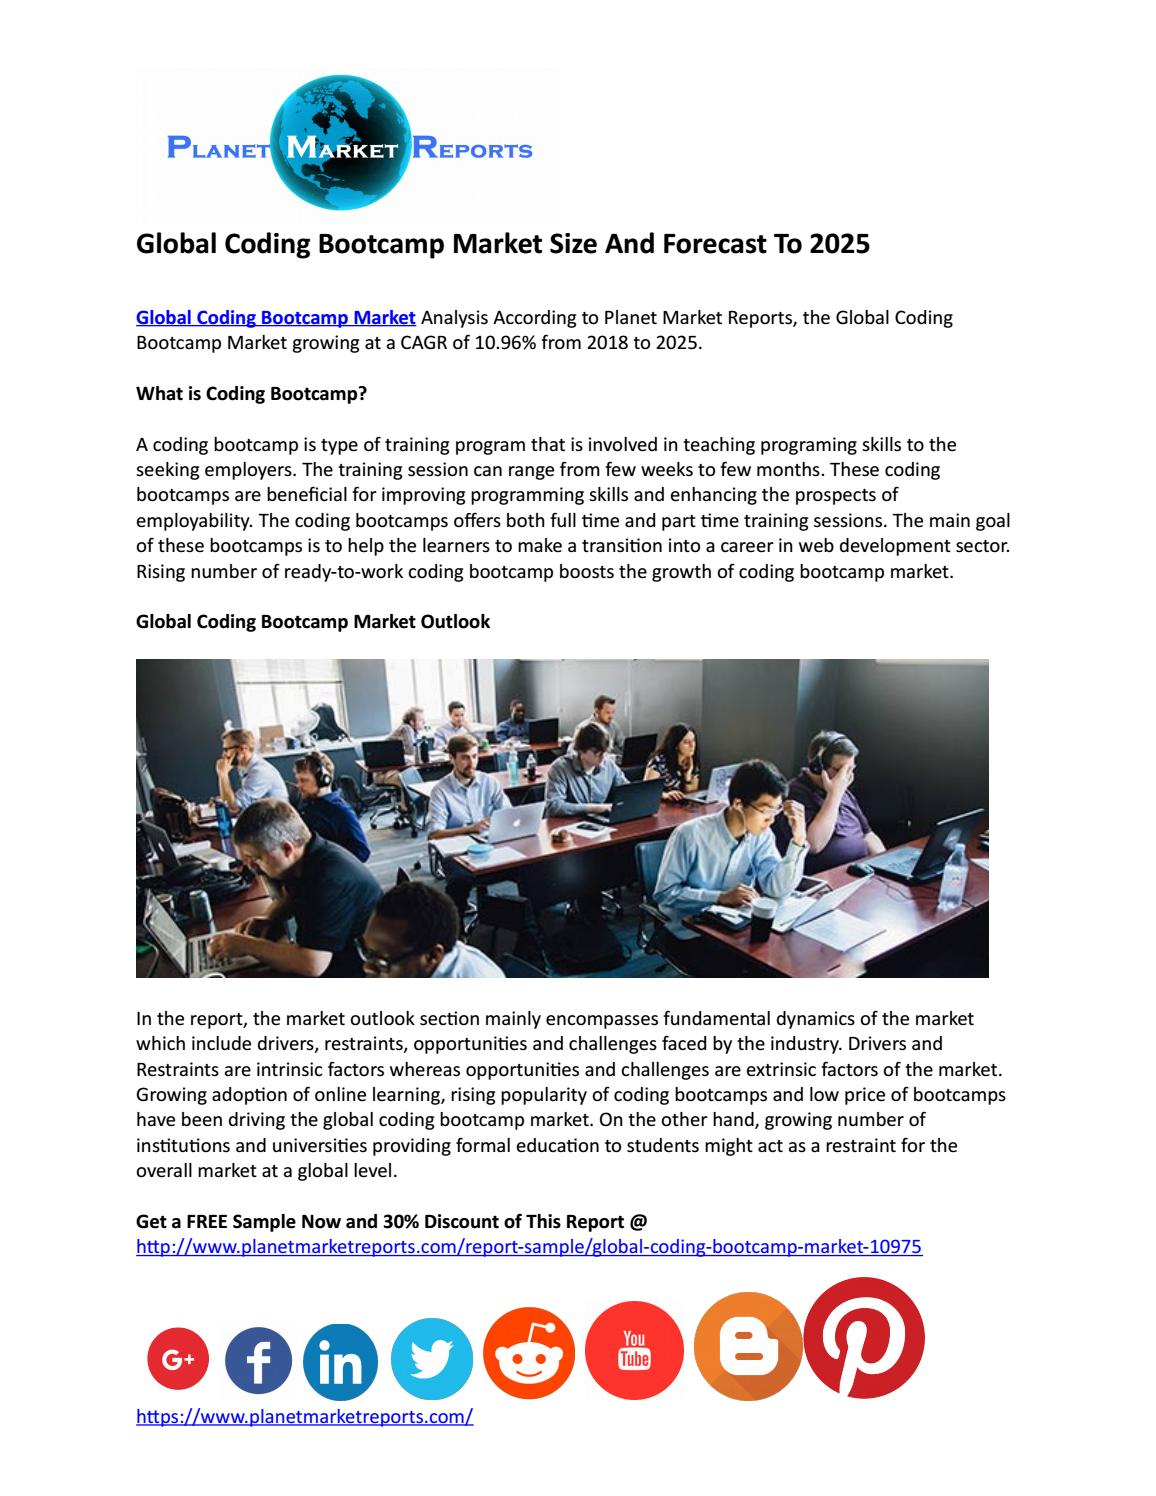 Global Coding Bootcamp Market Size And Forecast To 2025 by